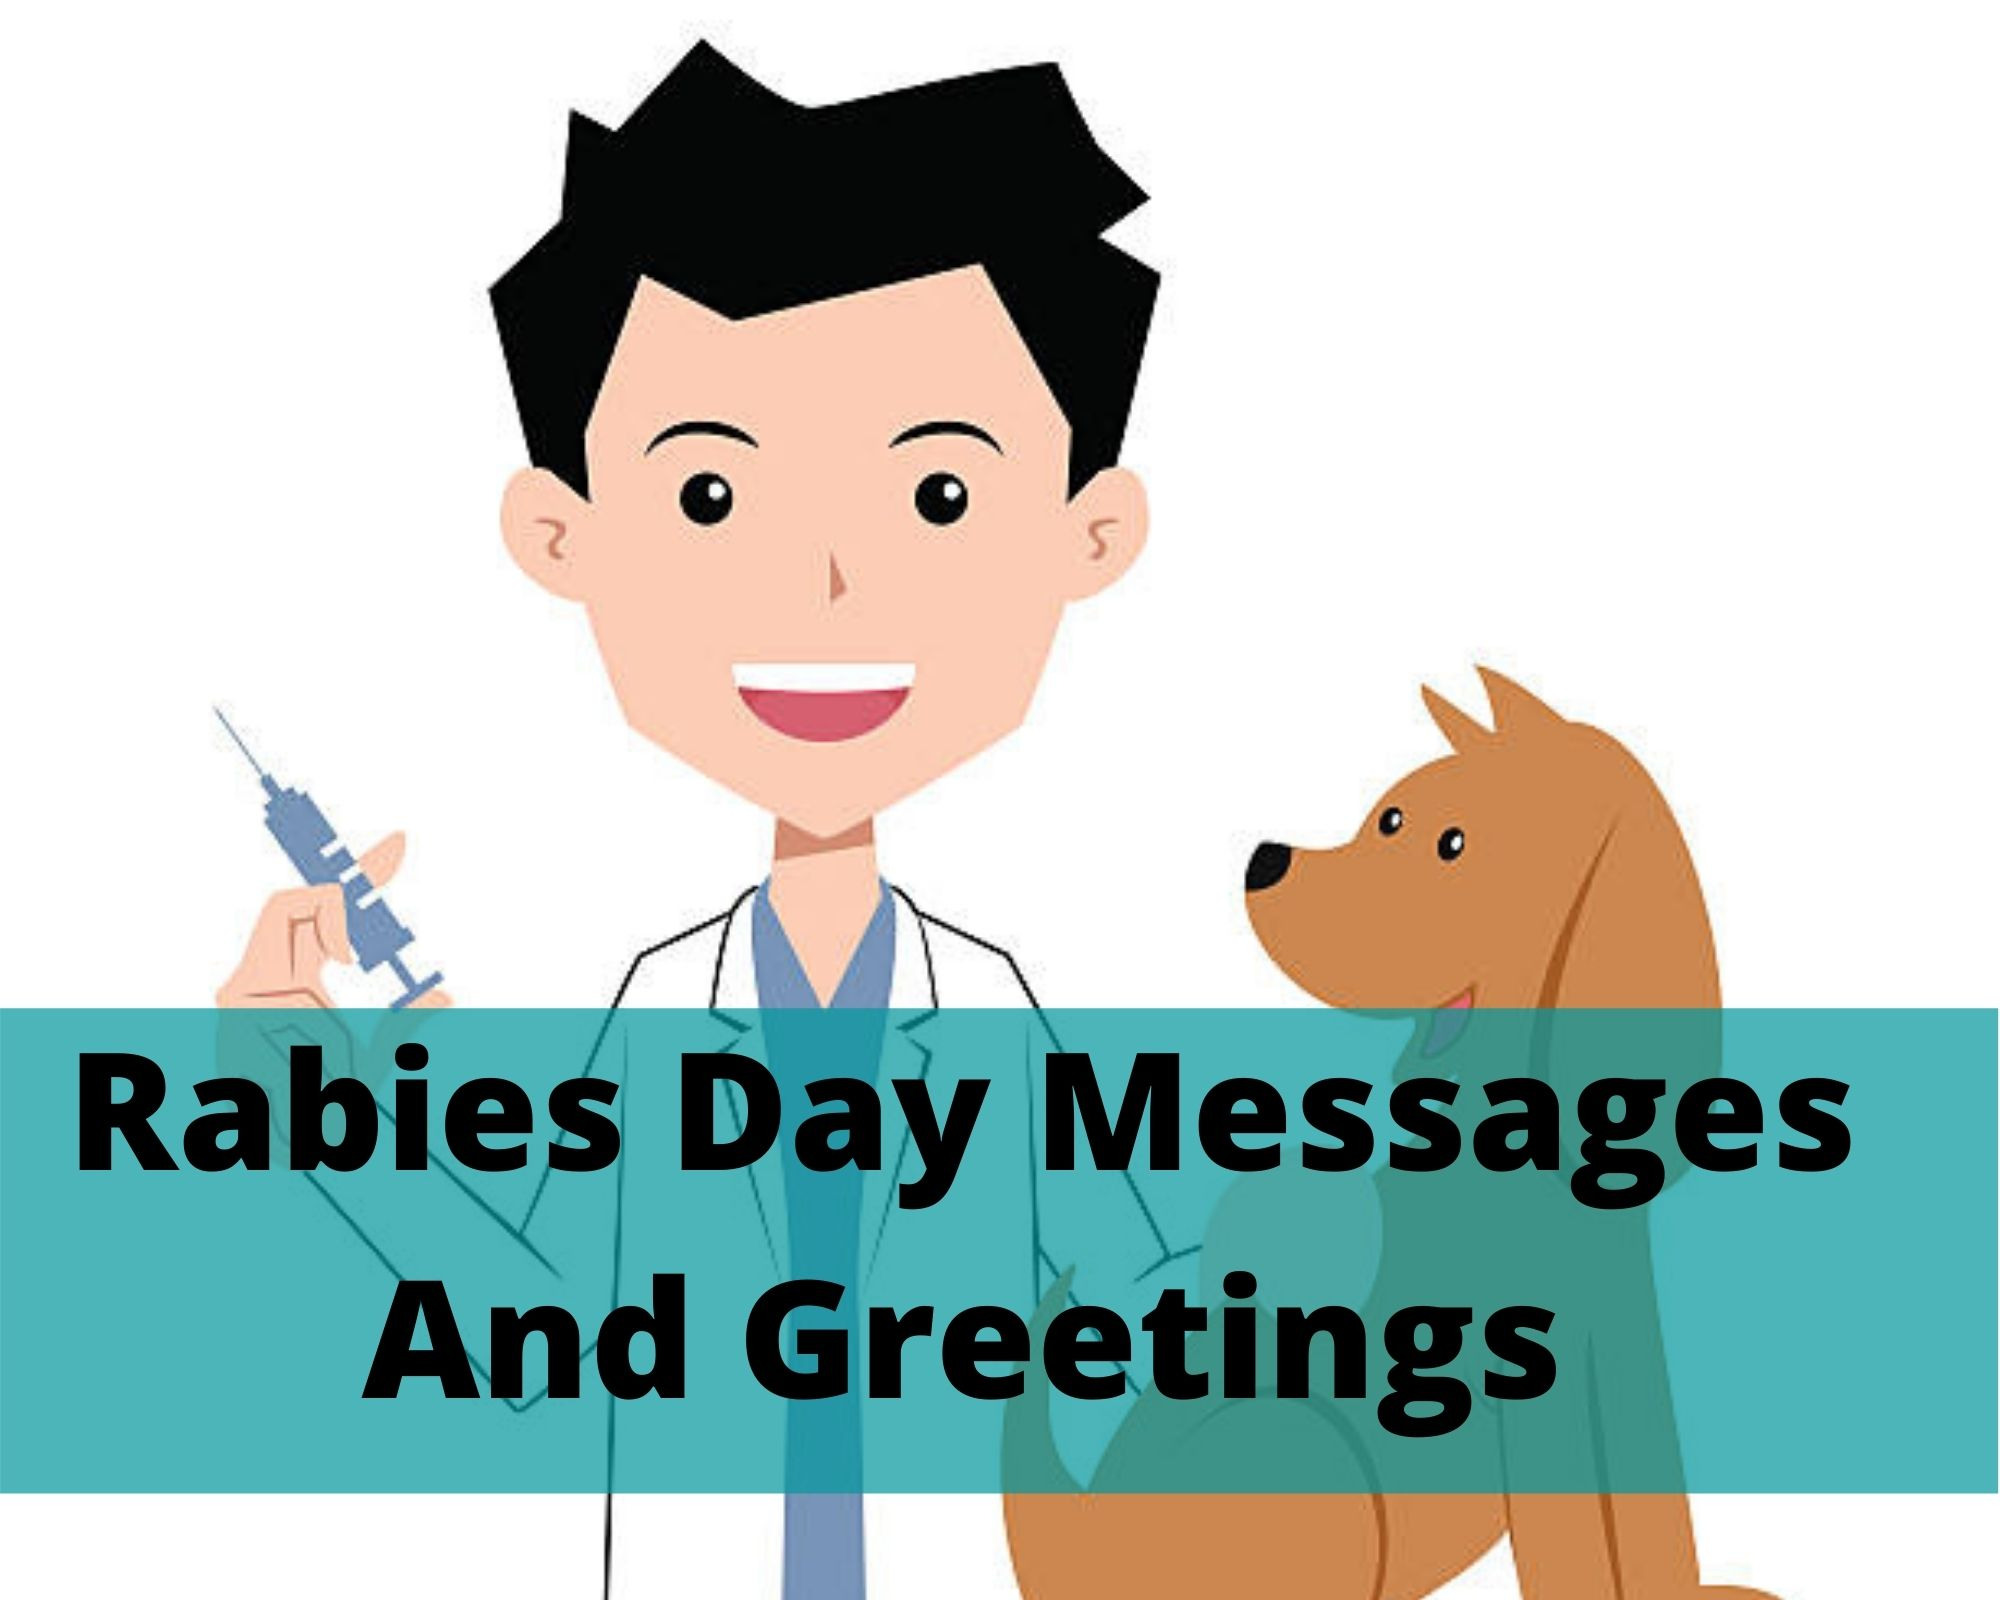 Rabies Day Messages And Greetings